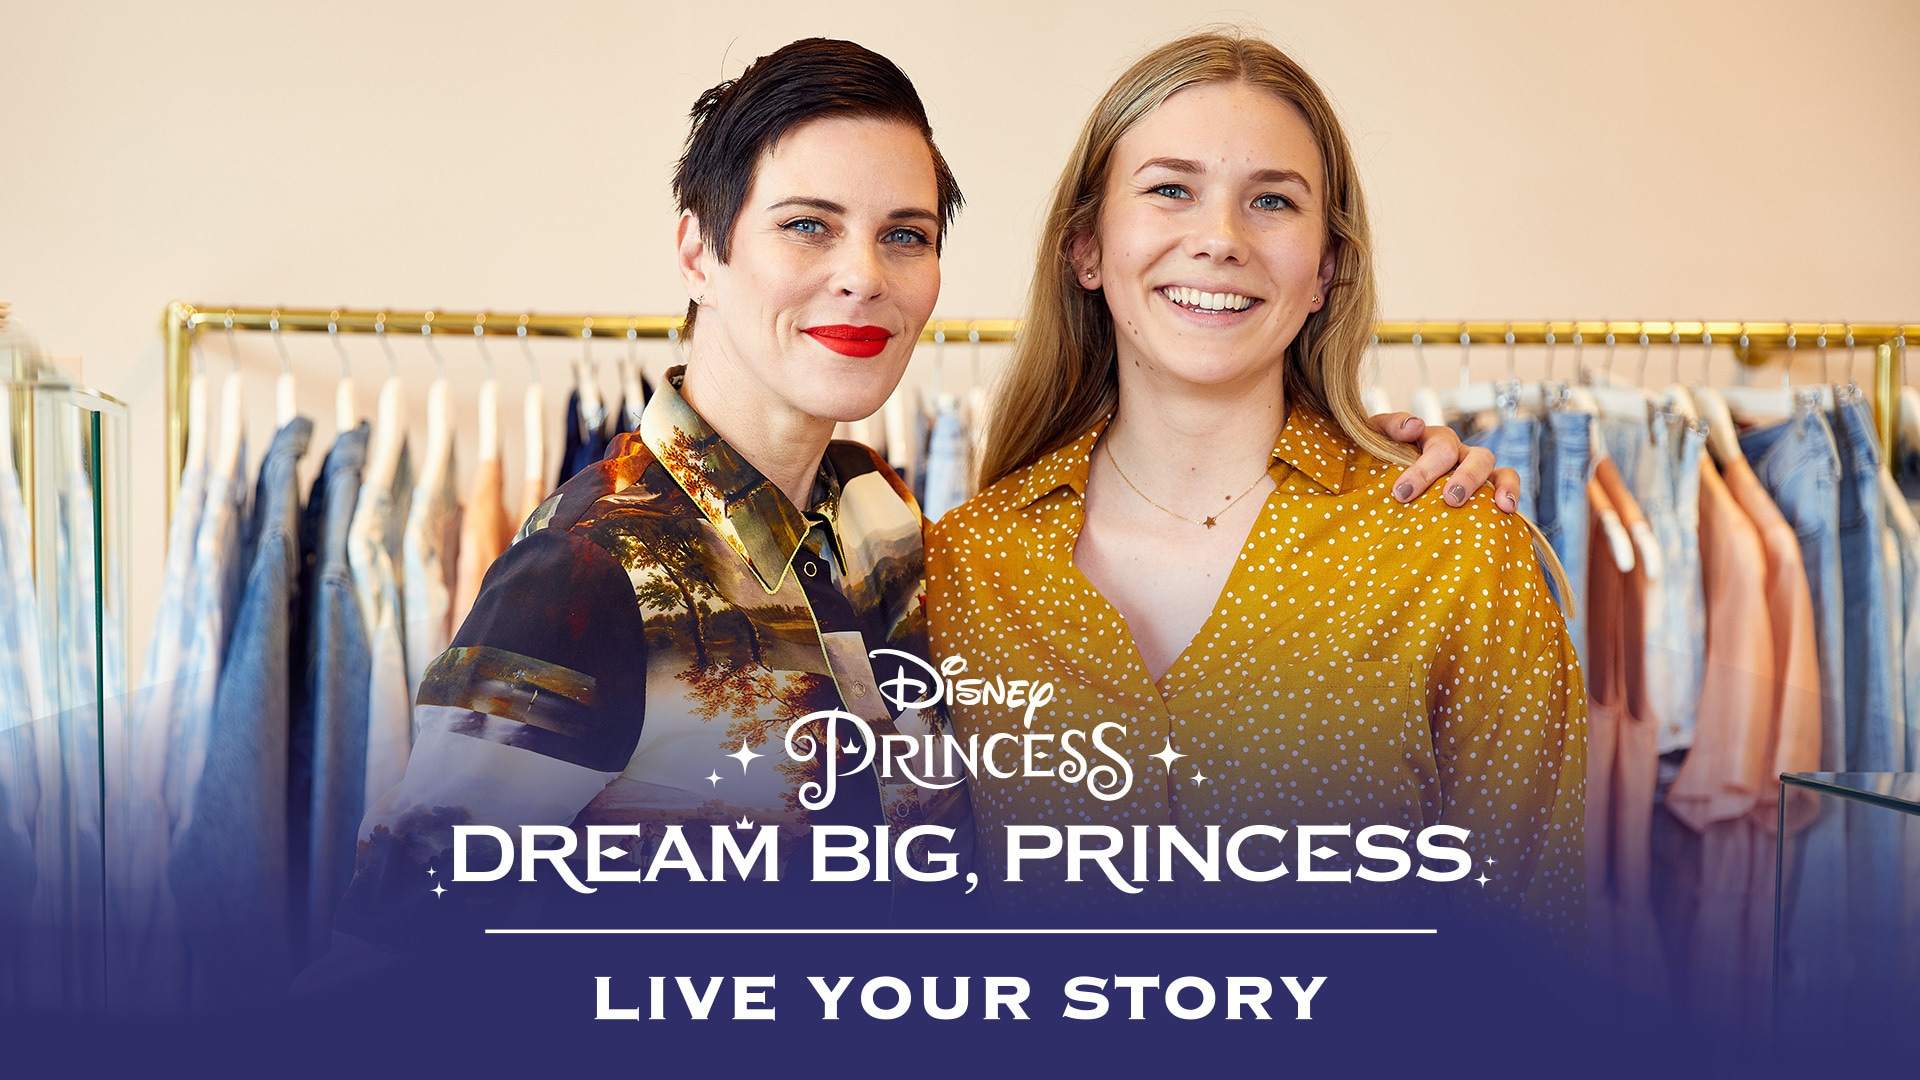 Dream Big, Princess - Sarah Meets Karen Walker | Disney